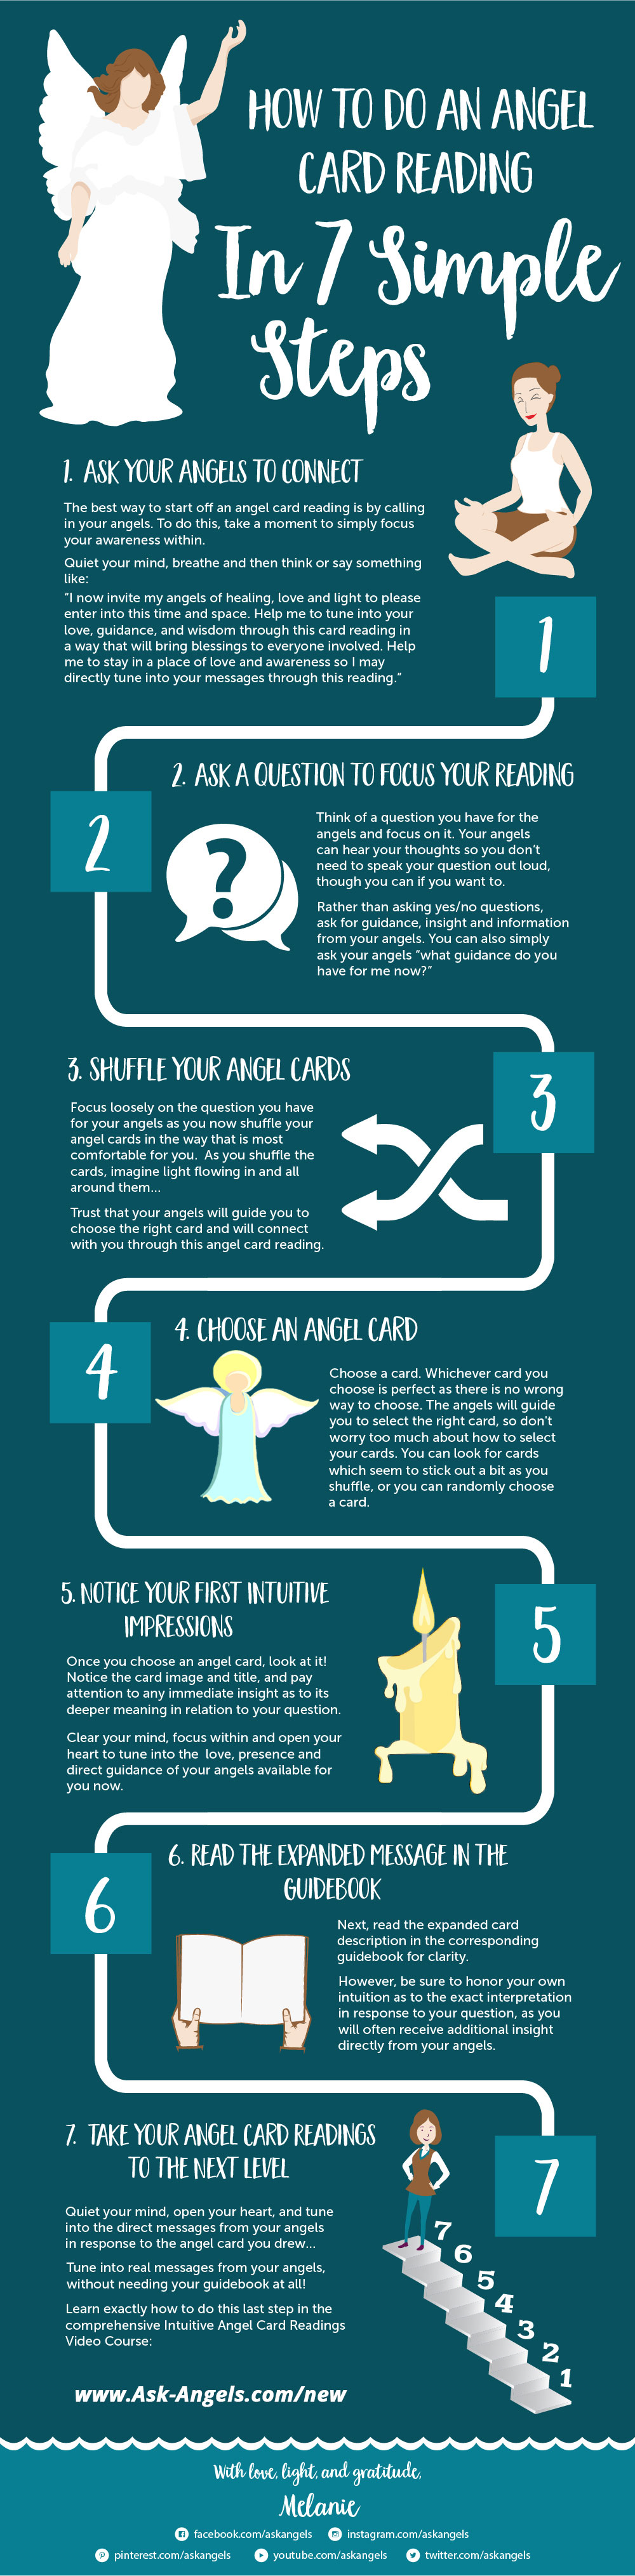 Angel-Card-Reading-7-Simple-Steps